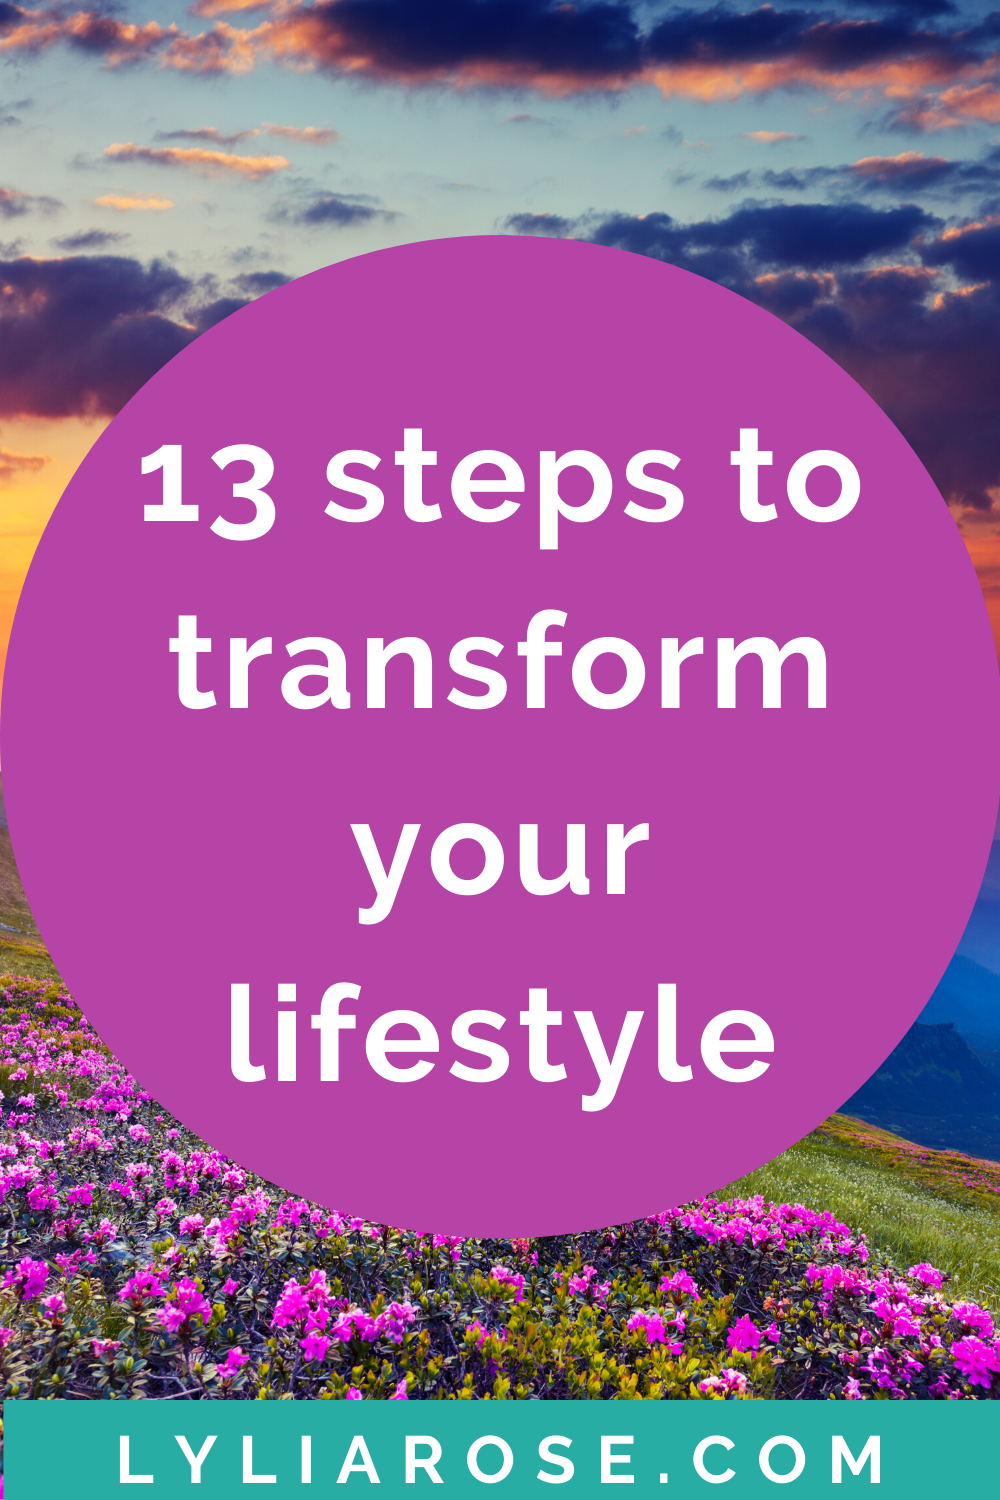 13 steps to transforming your lifestyle (1)